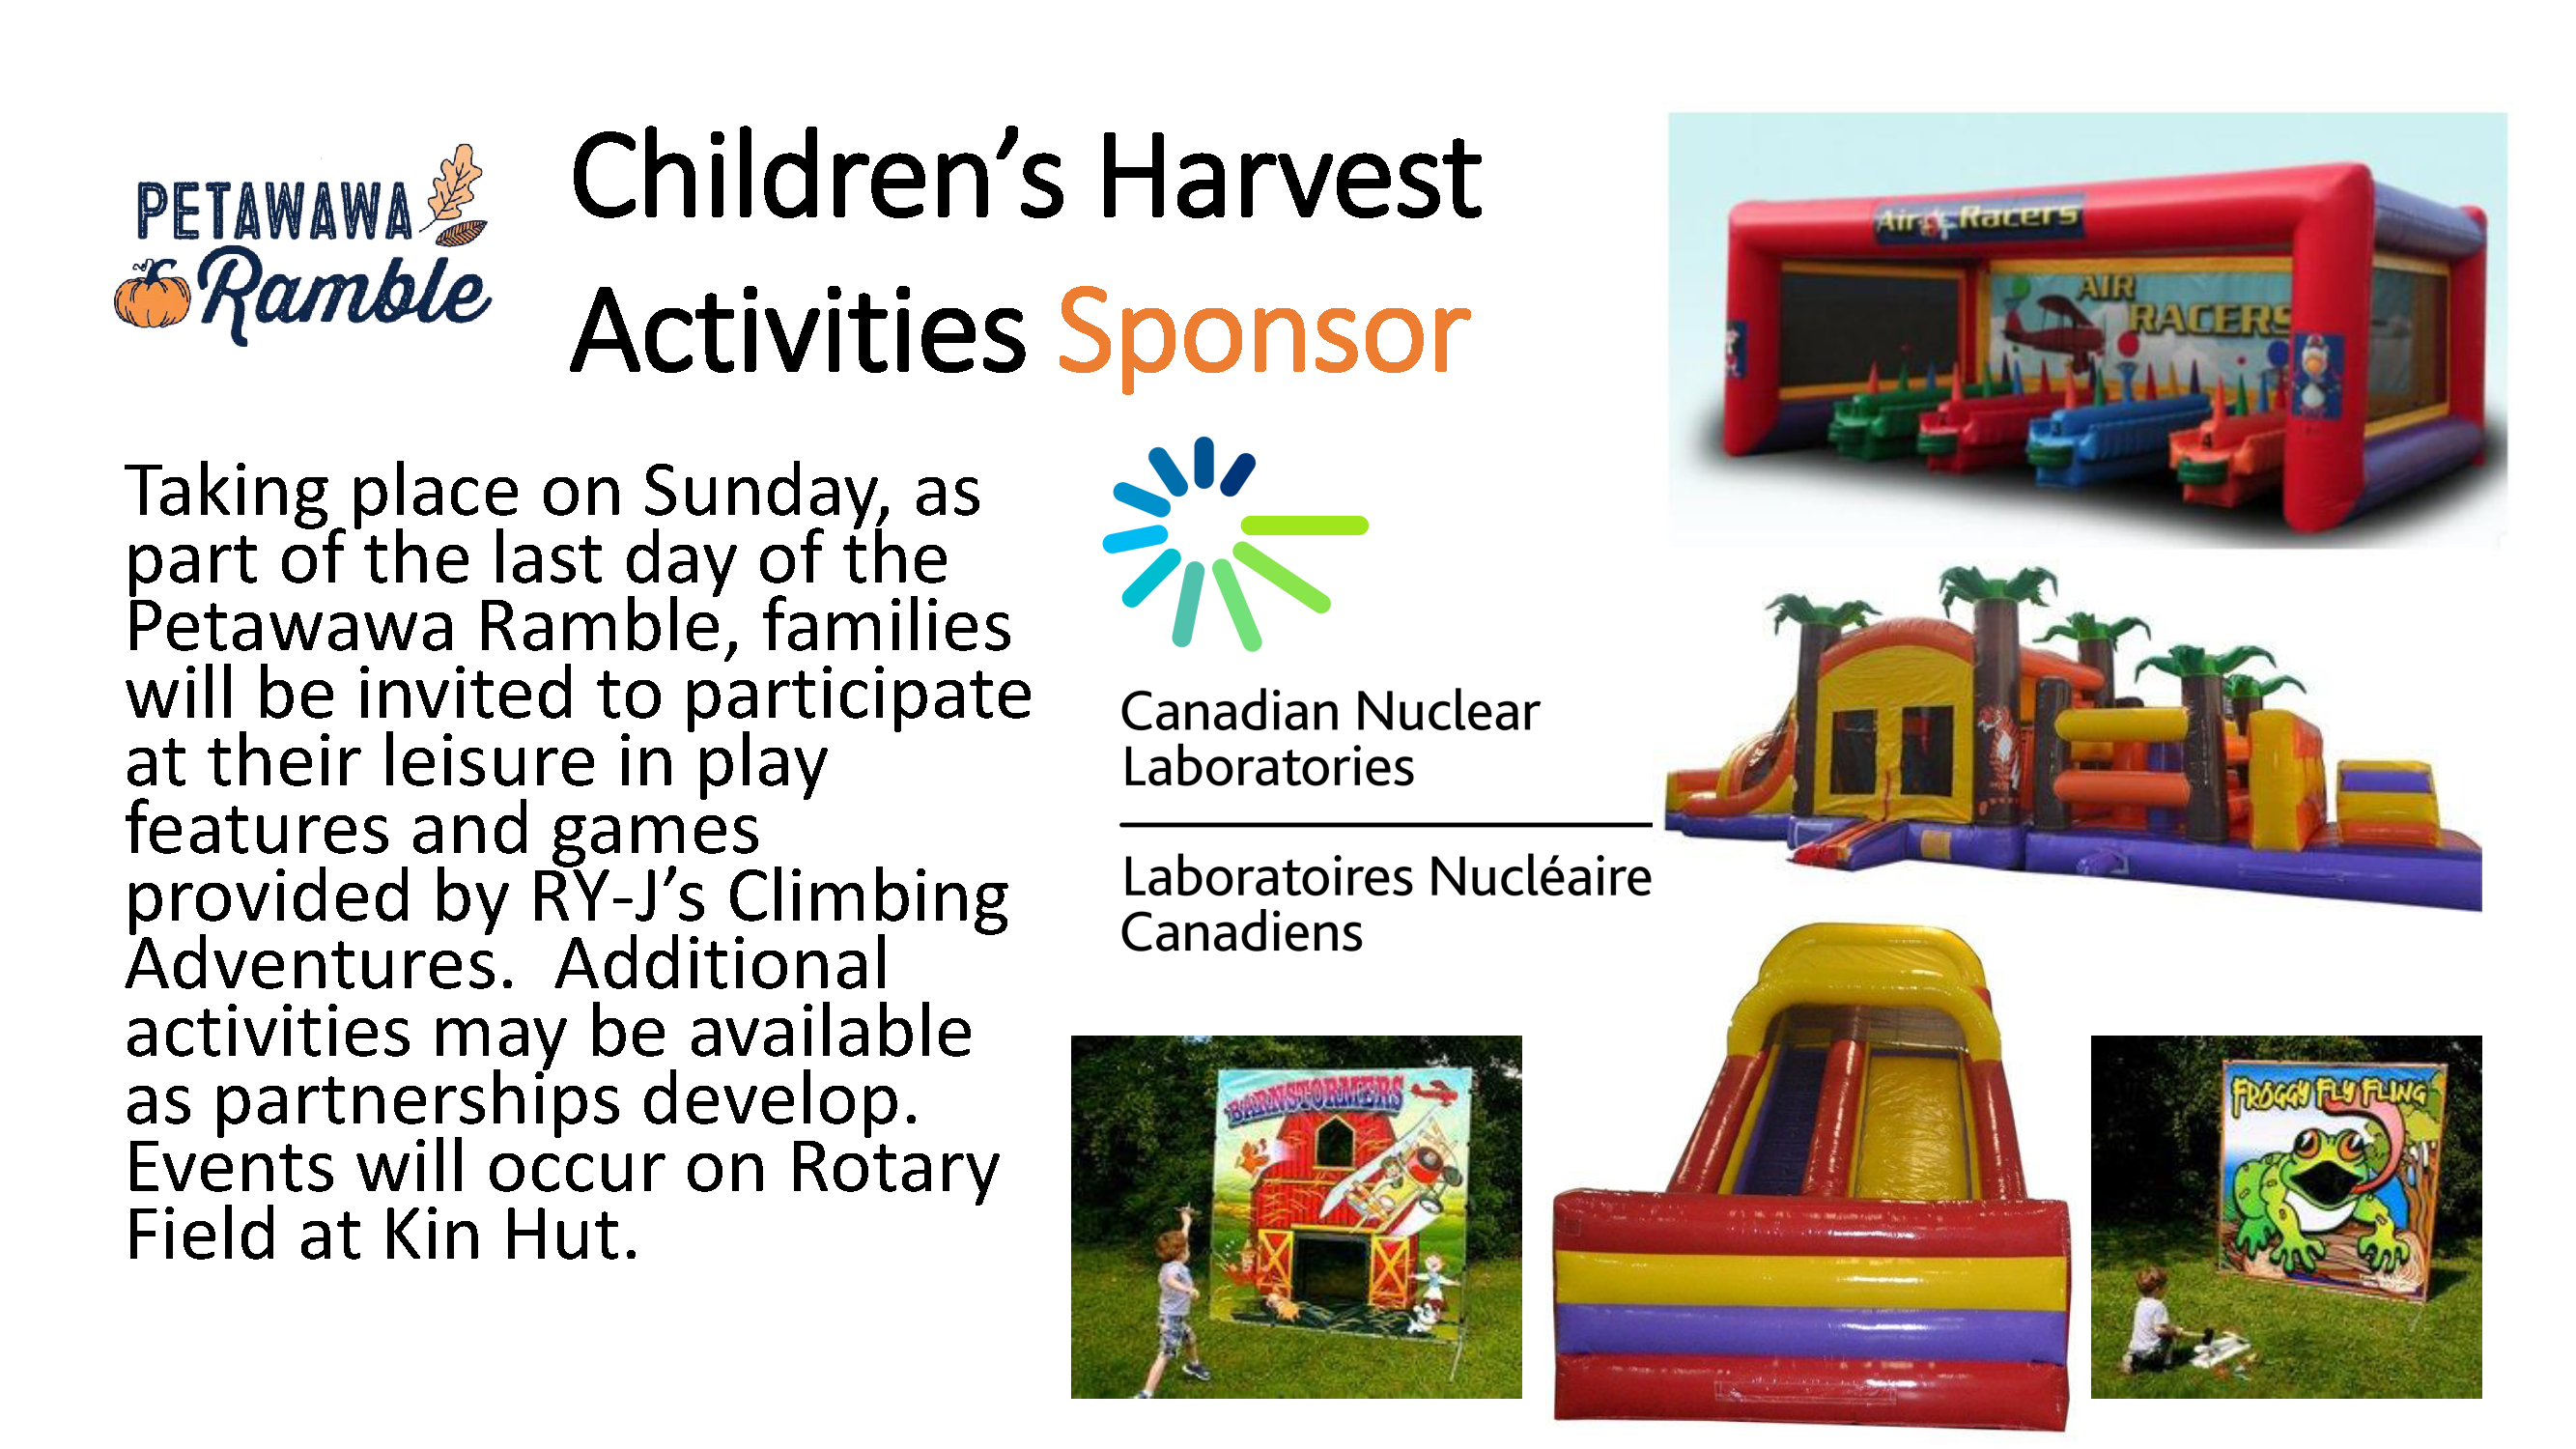 A graphic on the bouncy elements as part of the CNL Children's Harvest Activities for the Petawawa Ramble.